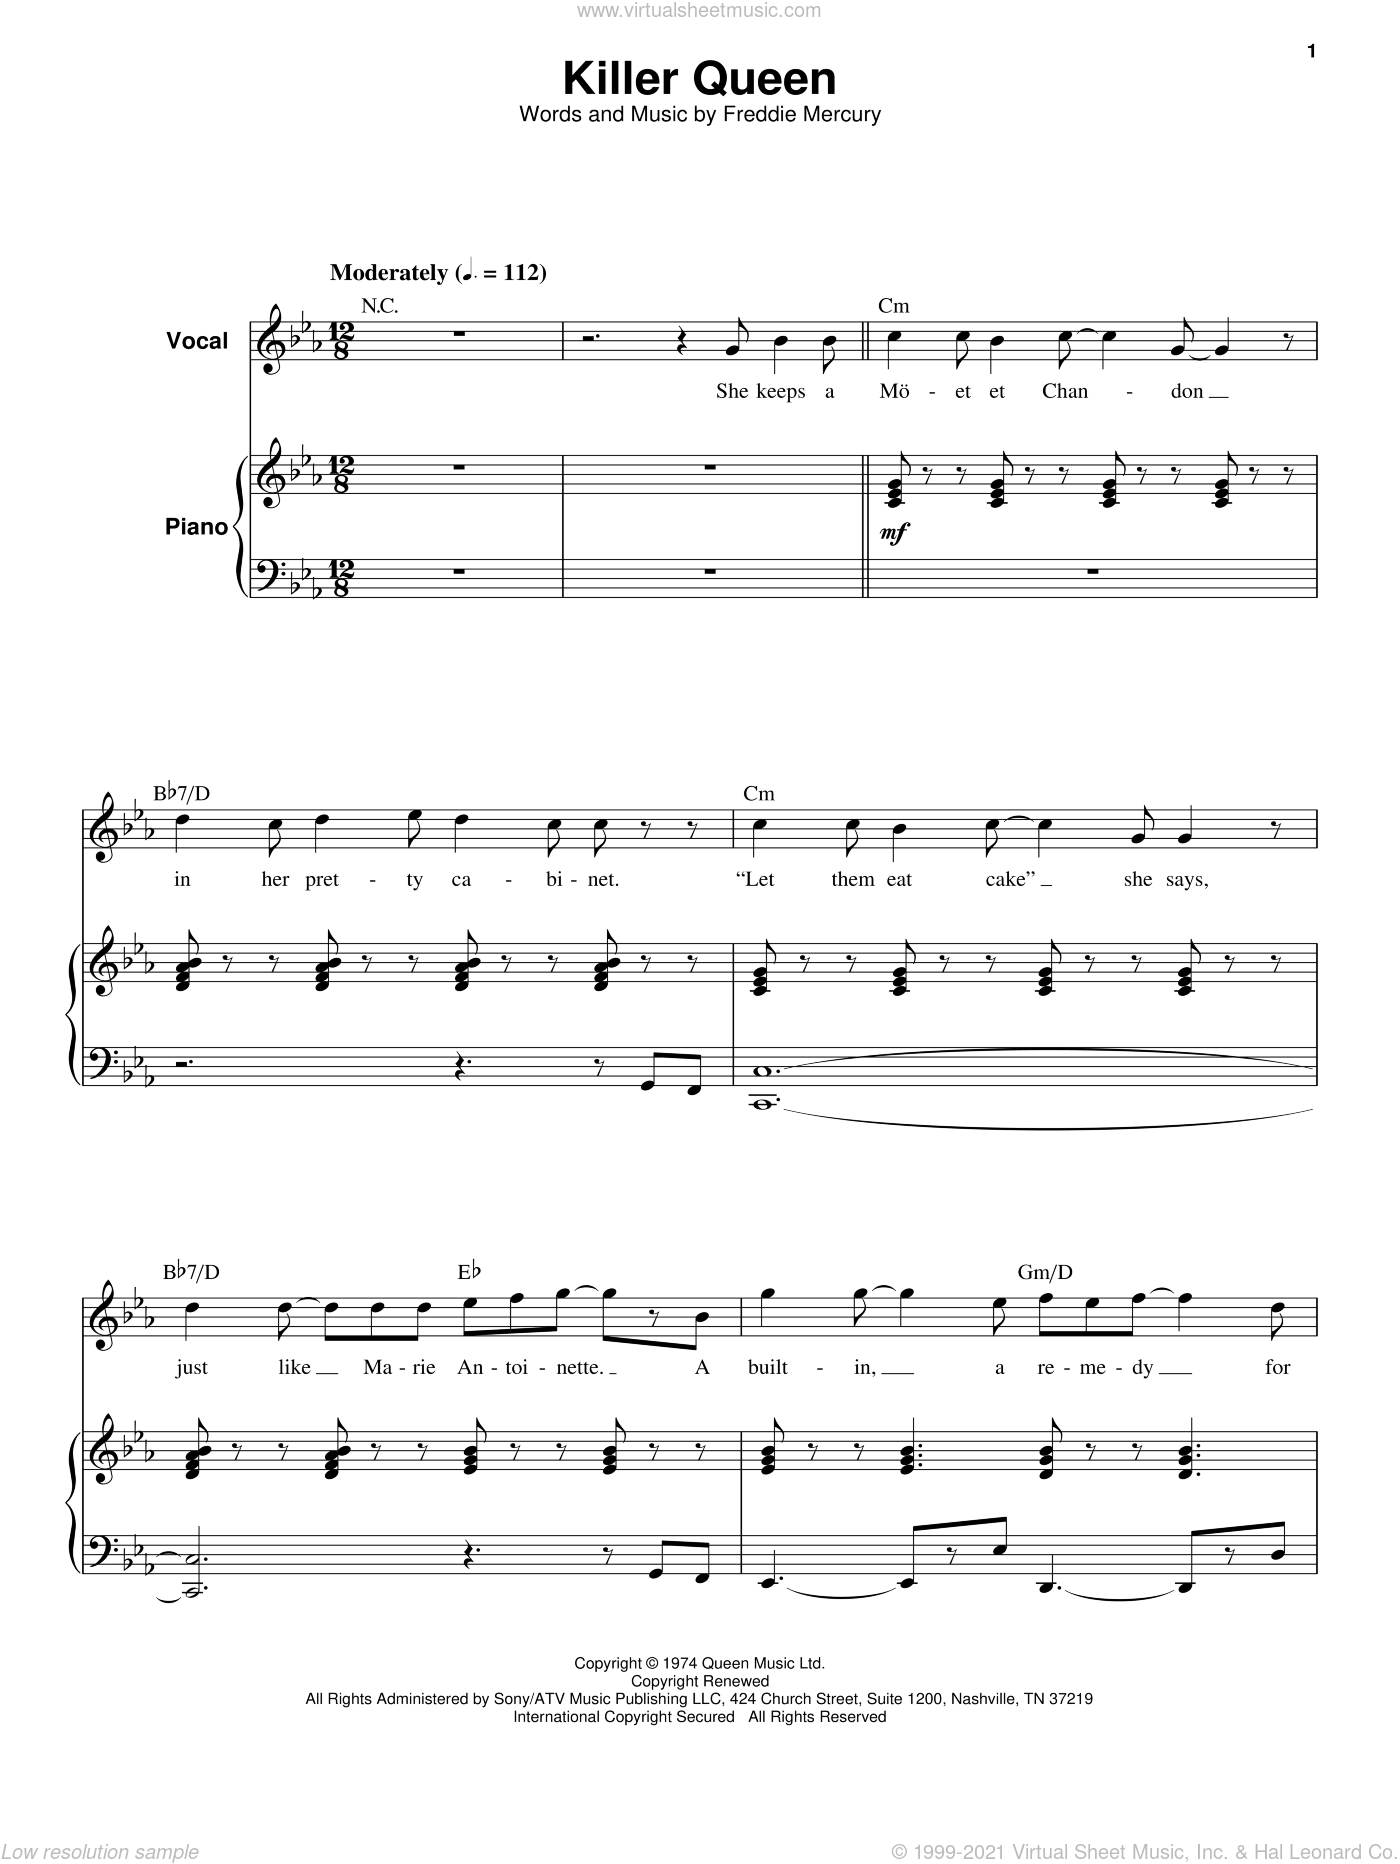 Killer Queen sheet music for voice and piano by Queen and Freddie Mercury, intermediate skill level